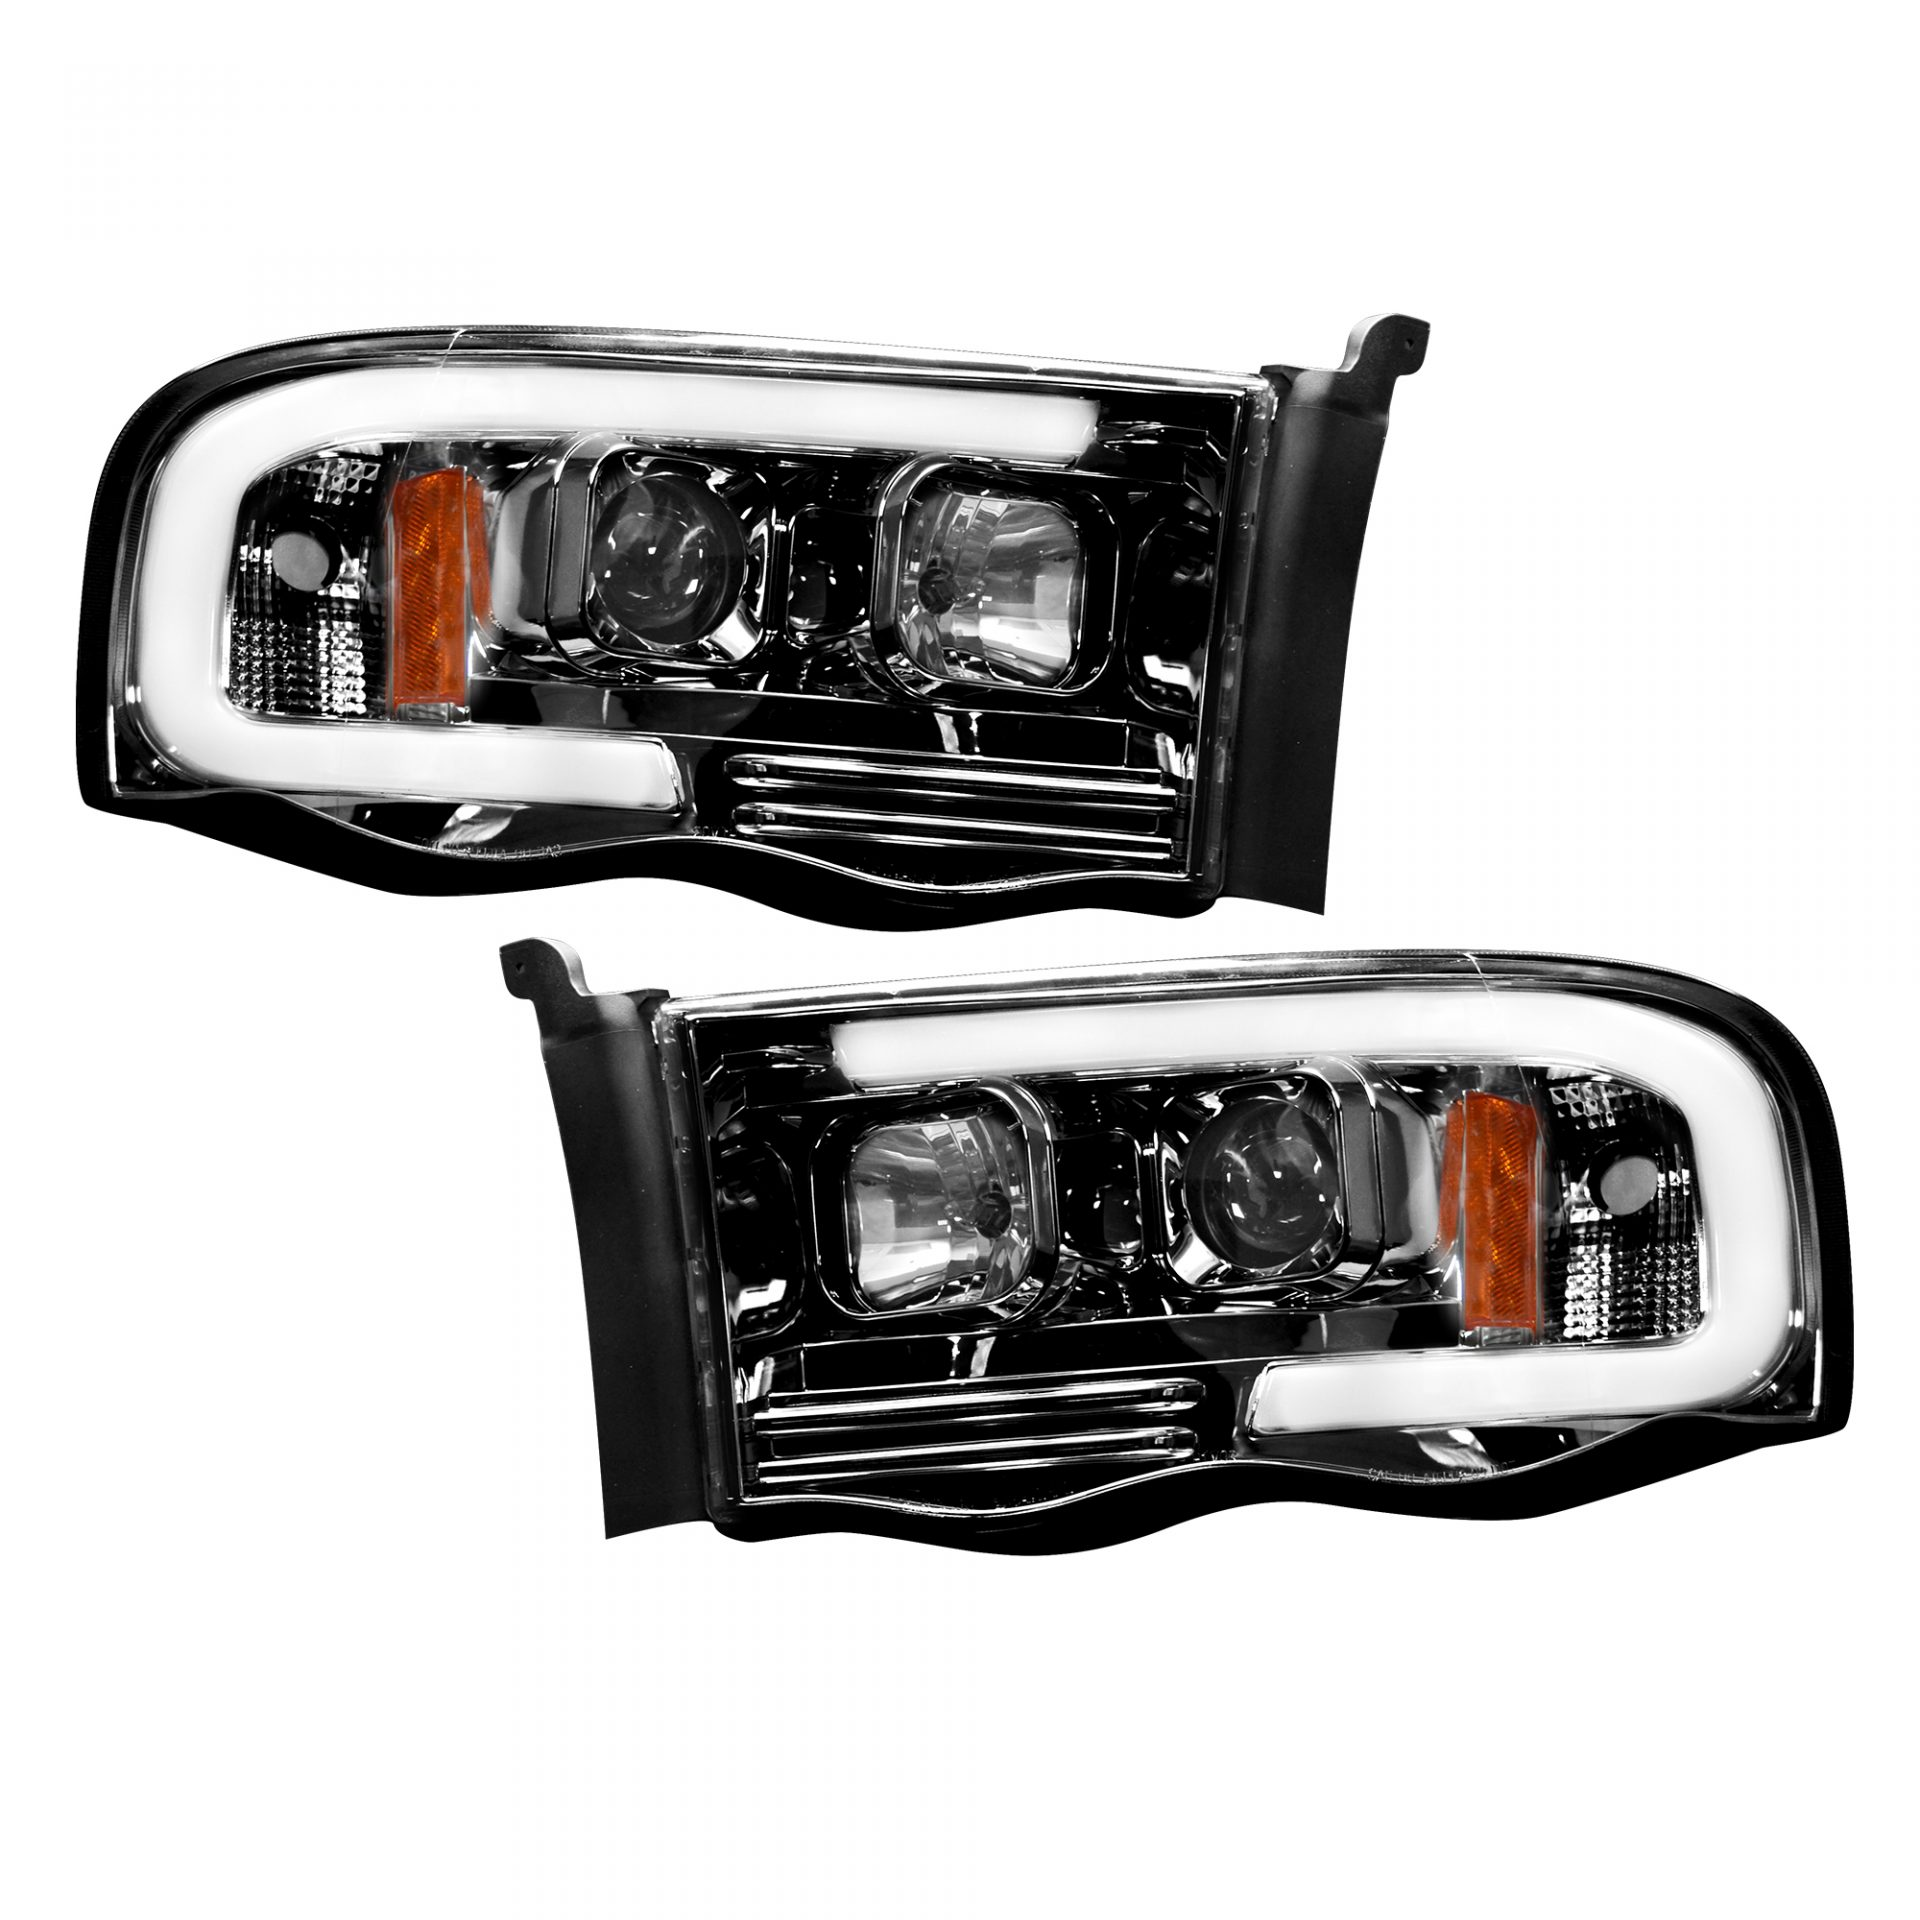 Recon 264191bkc Dodge Ram 02 05 1500 2500 3500 Projector Headlights W Ultra High Smooth Oled Halos Drl Smoked Black